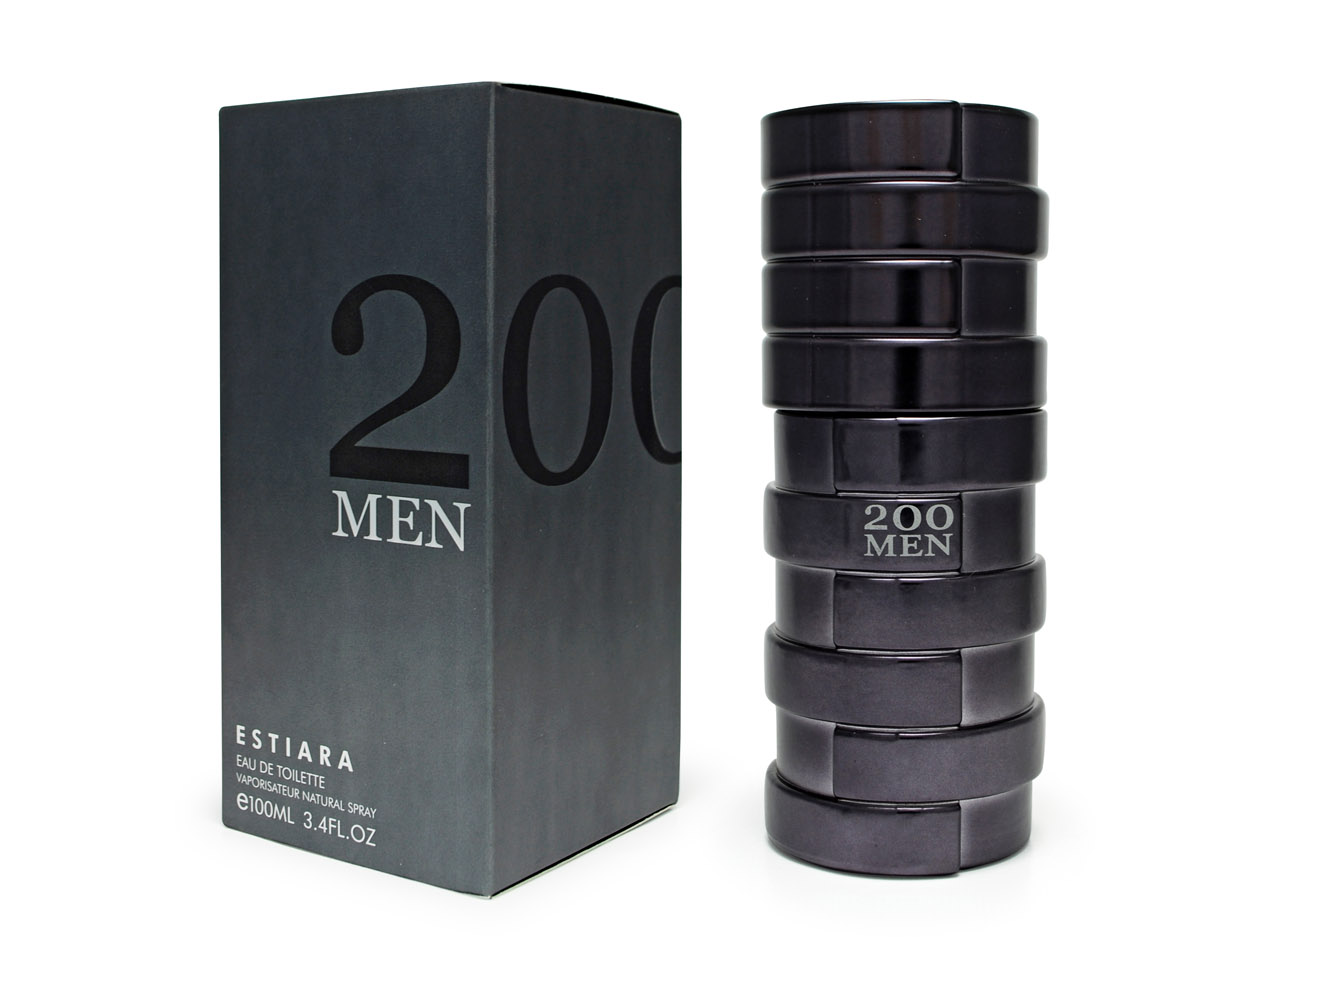 200 MEN - CAROLINA HERRERA 212 MEN